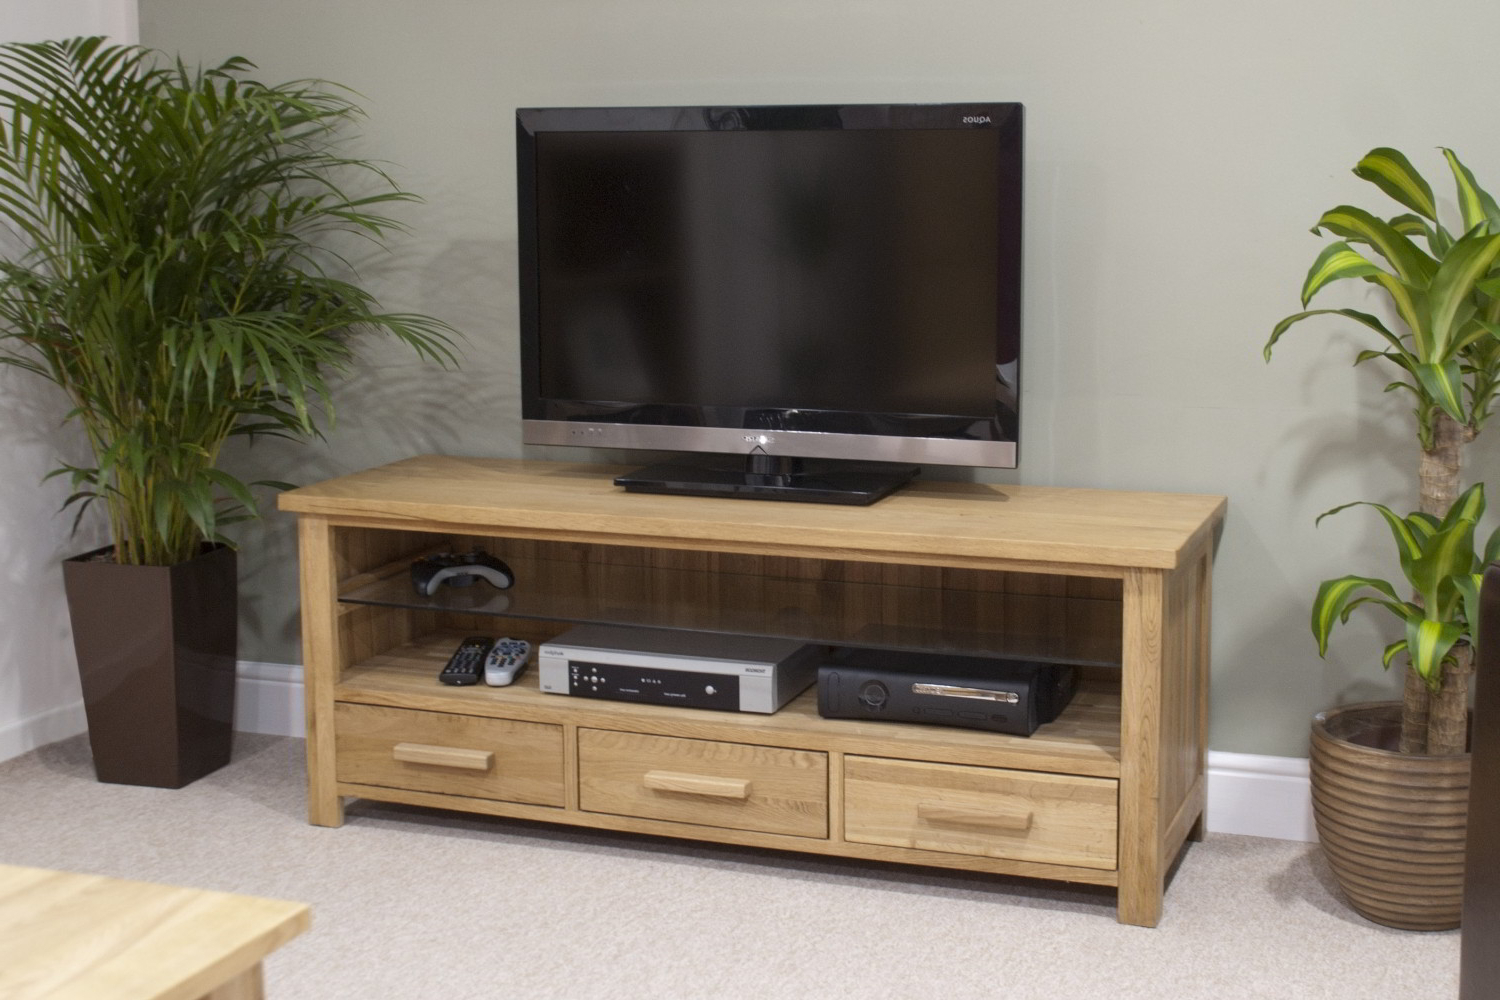 Pine Wood Tv Stands Intended For Fashionable Oak Wood Entertainment Center Golden Tv Stand Solid Console With (View 3 of 20)